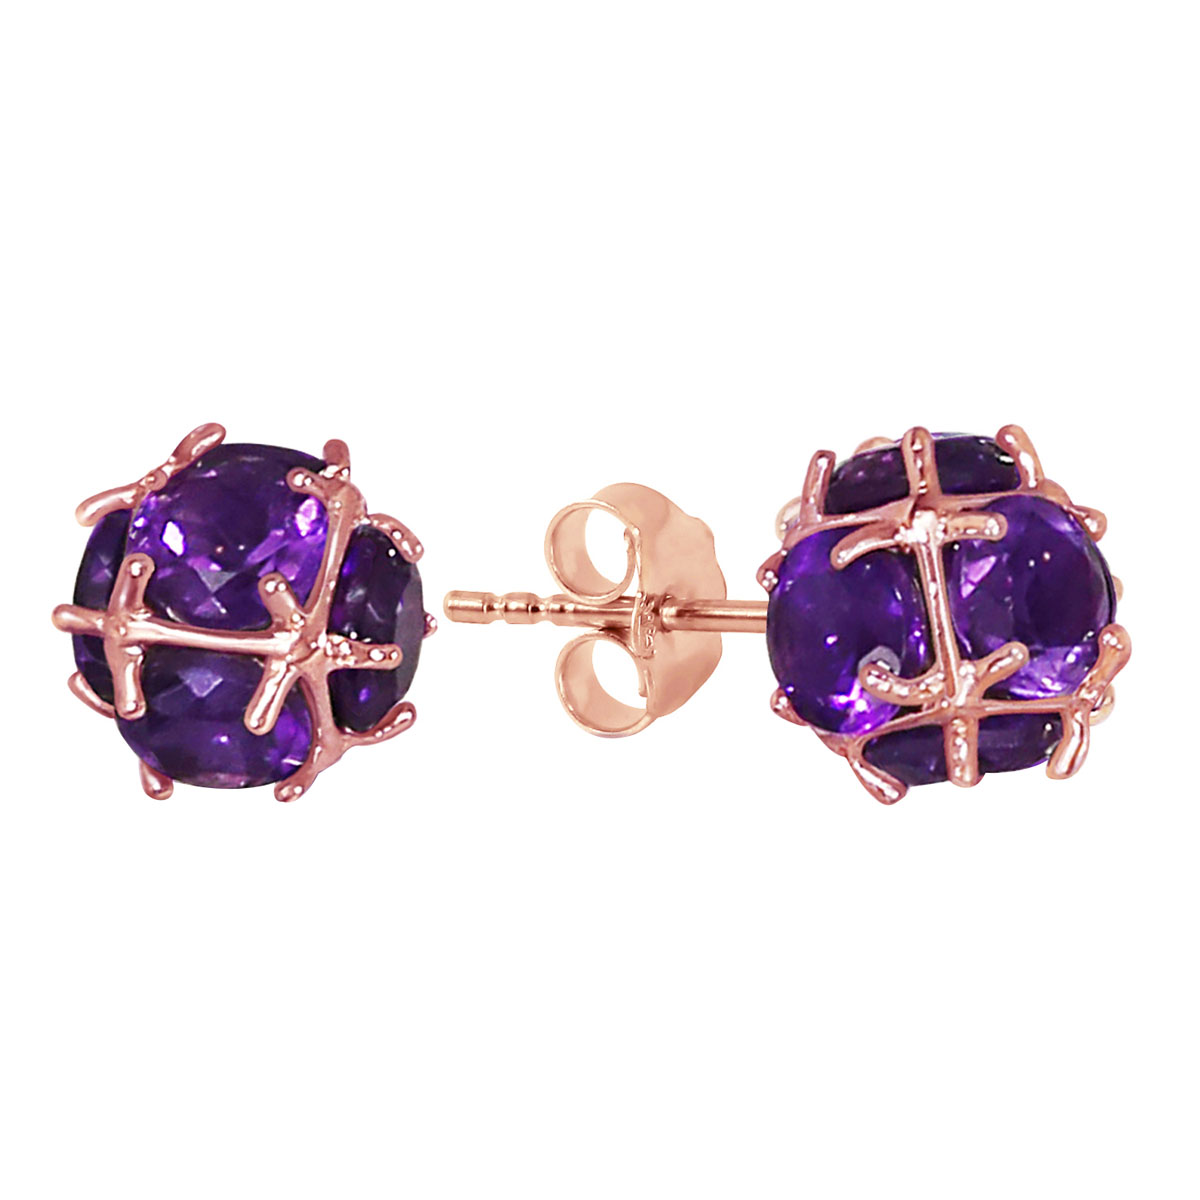 Amethyst Infinity Stone Earrings 5.7 ctw in 9ct Rose Gold